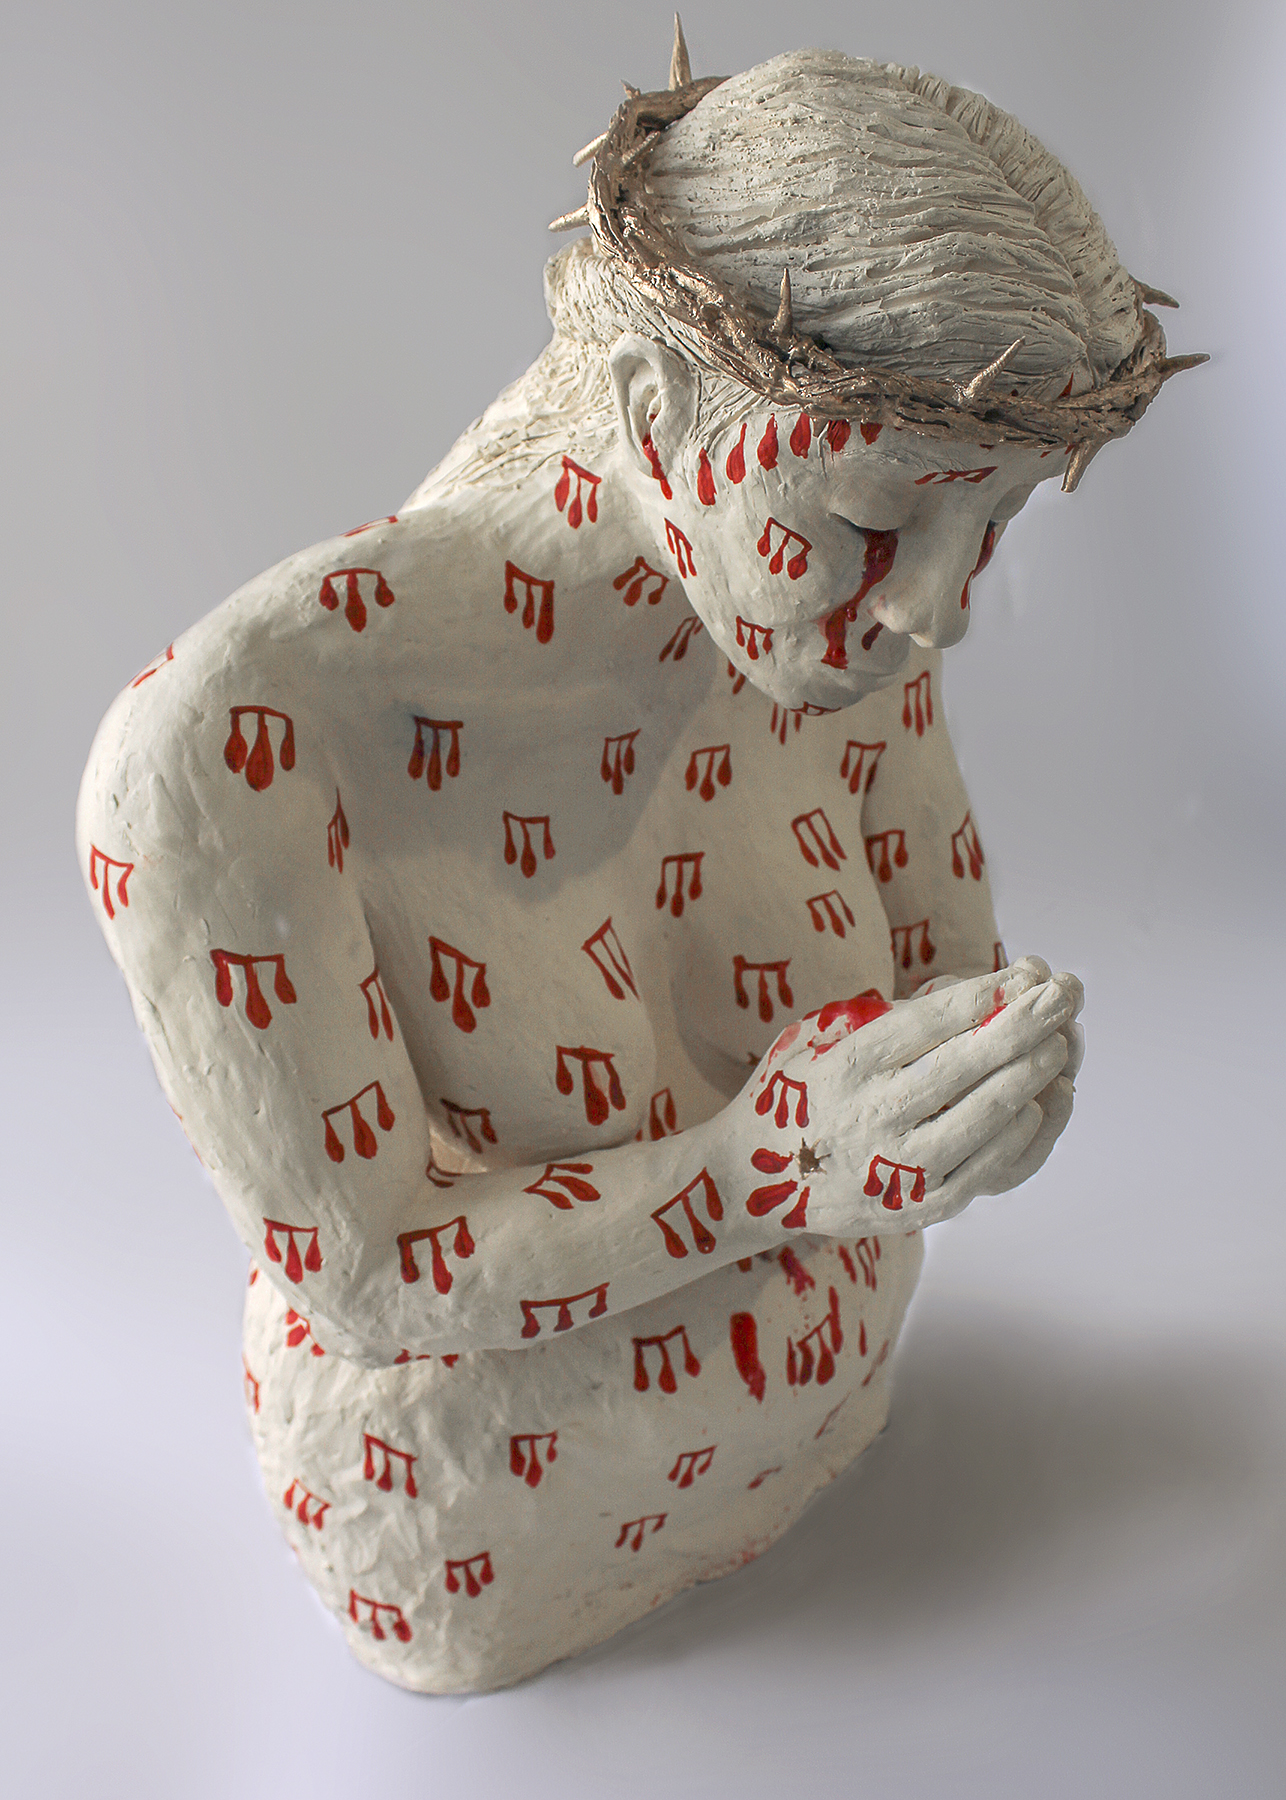 """From Dust You Came - Sydney Porter Williams, 2019, ceramic, 30 x 12 x 7"""""""